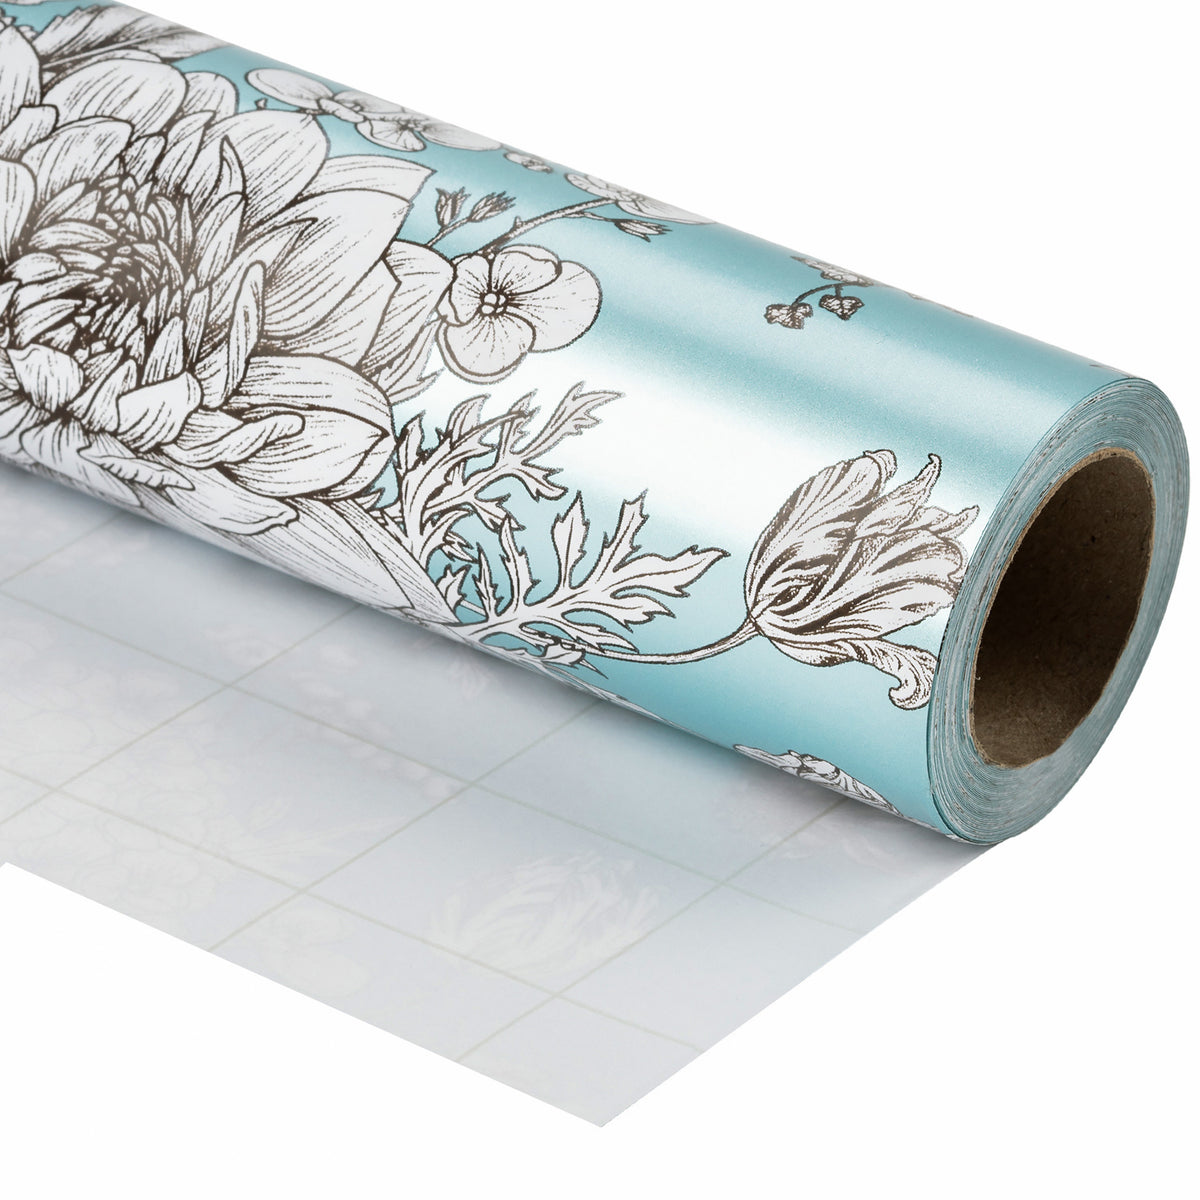 Wrapaholic-Vintage-Floral- Printed-on-Blue Pearlized-Pape-Gift-Wrapping-Paper-Roll-1